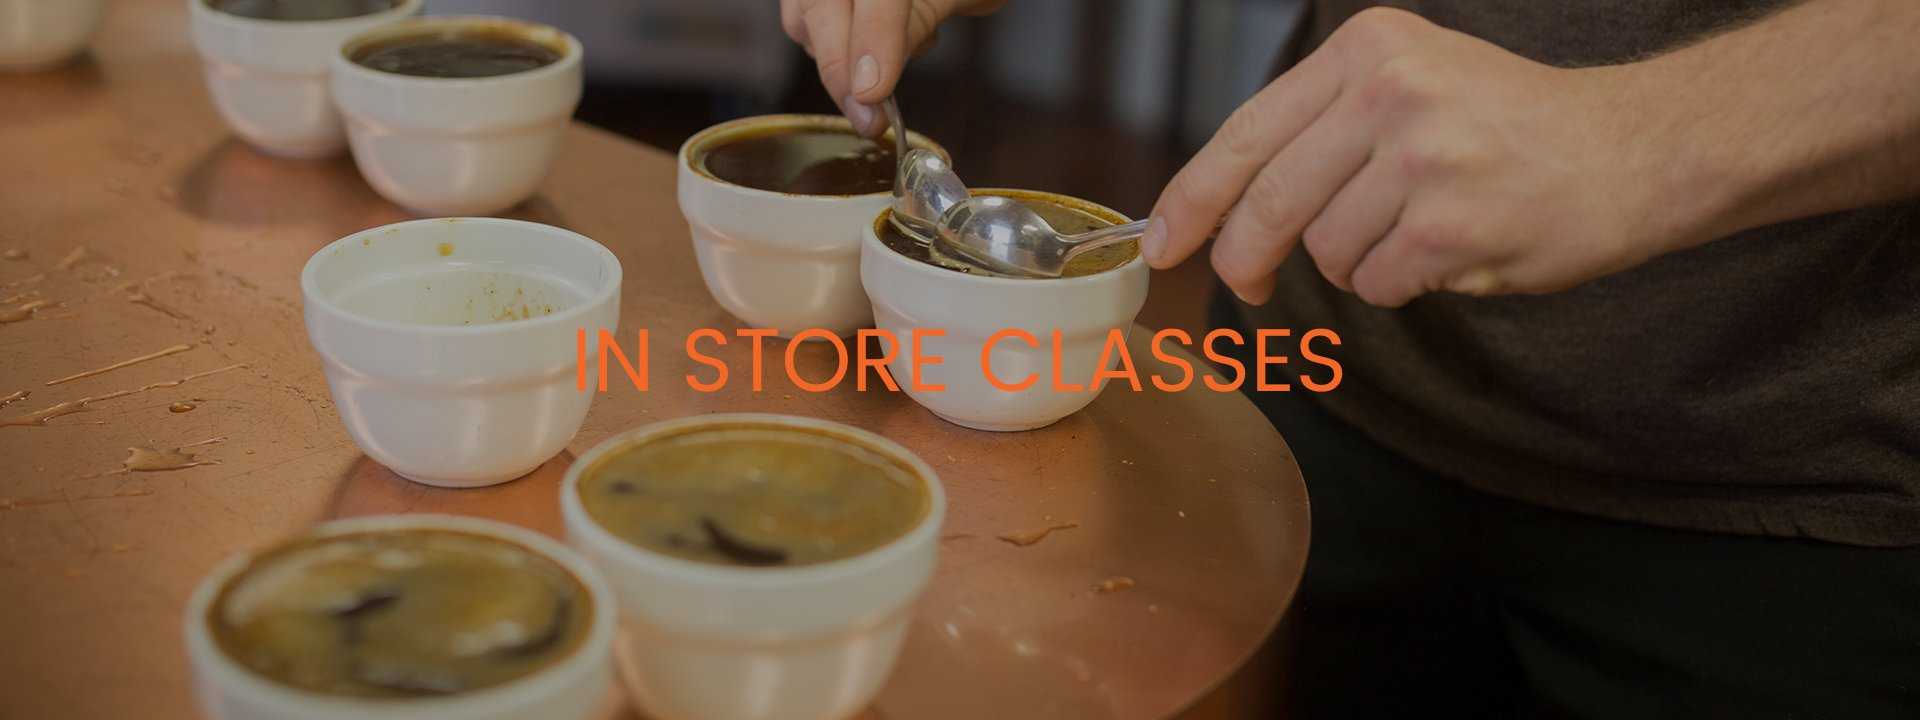 IN STORE CLASSES - SCRAPING OIL OFF COFFEE WITH SPOONS